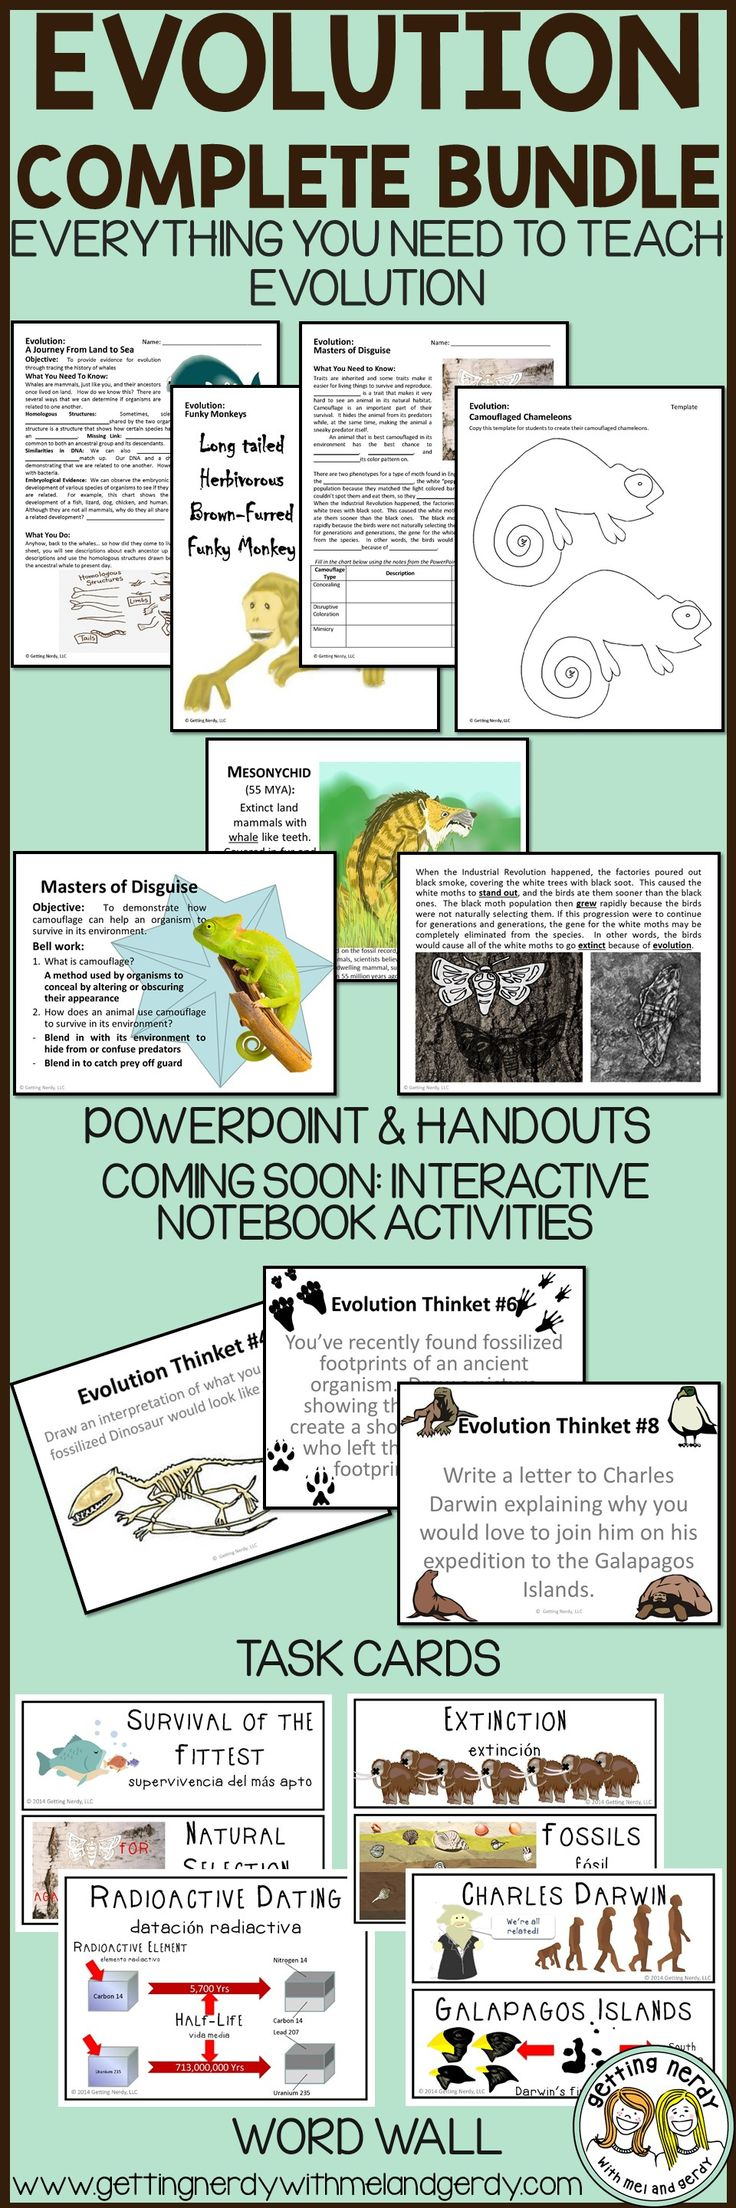 What idea did hardy and weinberg disprove - My Students Had A Blast With These Evolution Activities